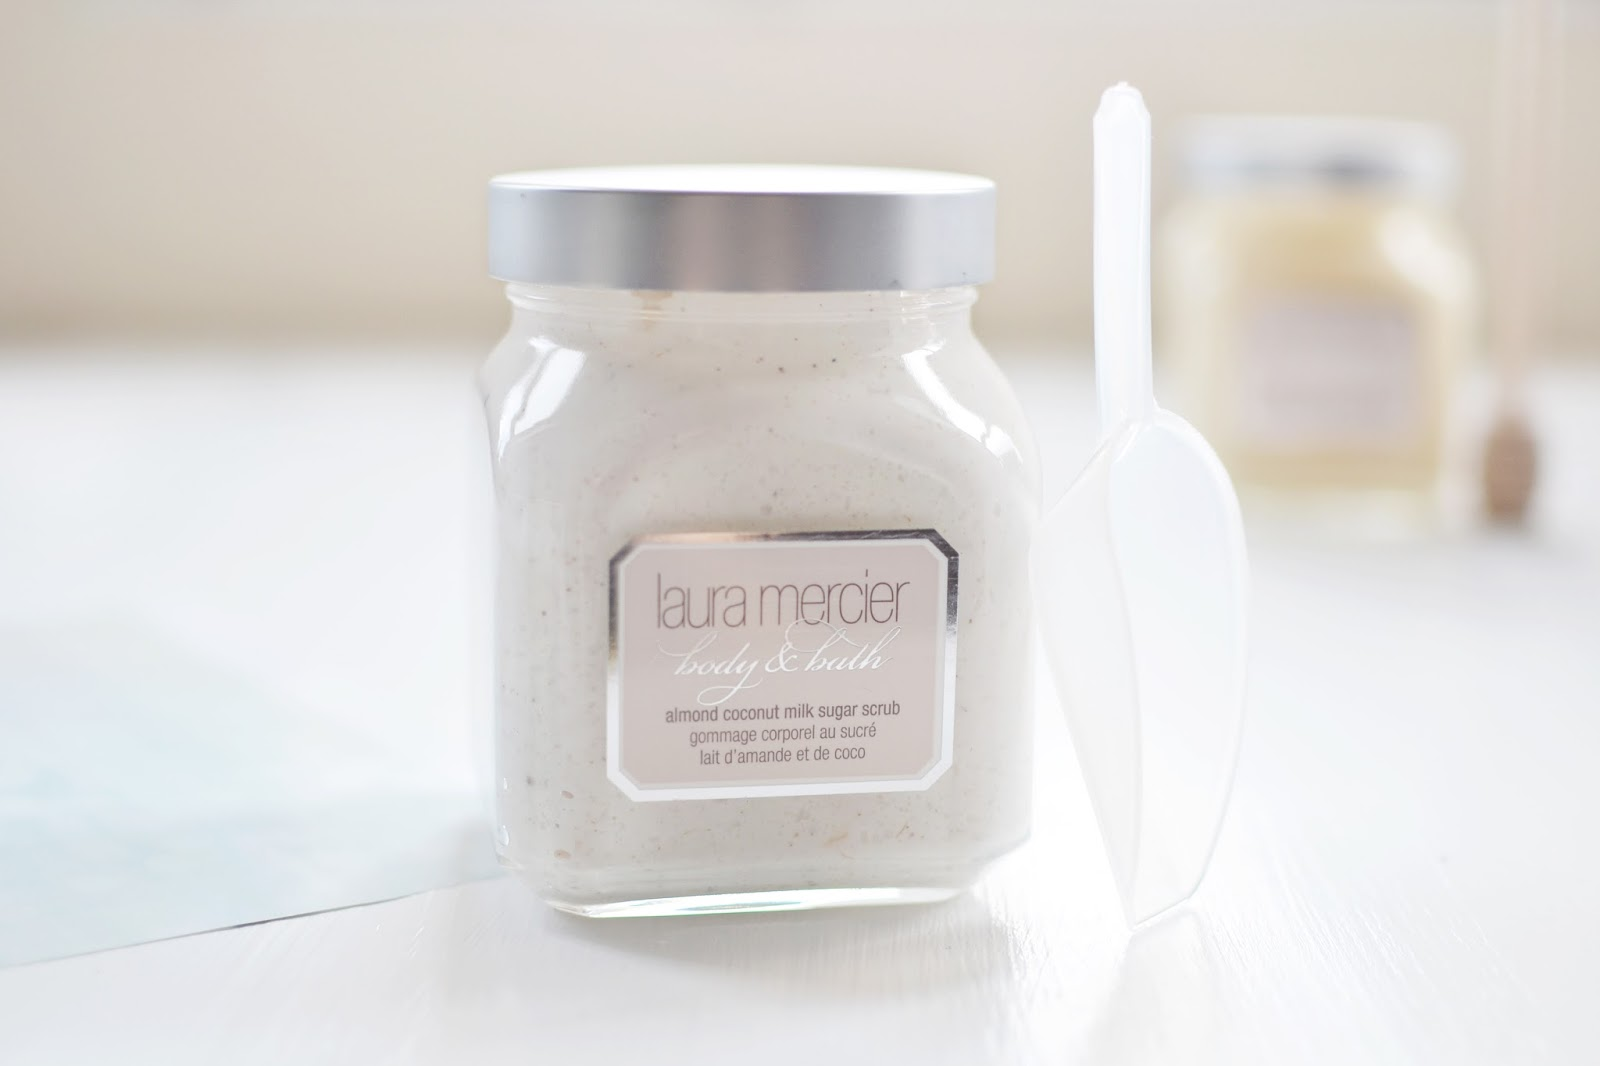 Laura Mercier Almond Coconut sugar scrub